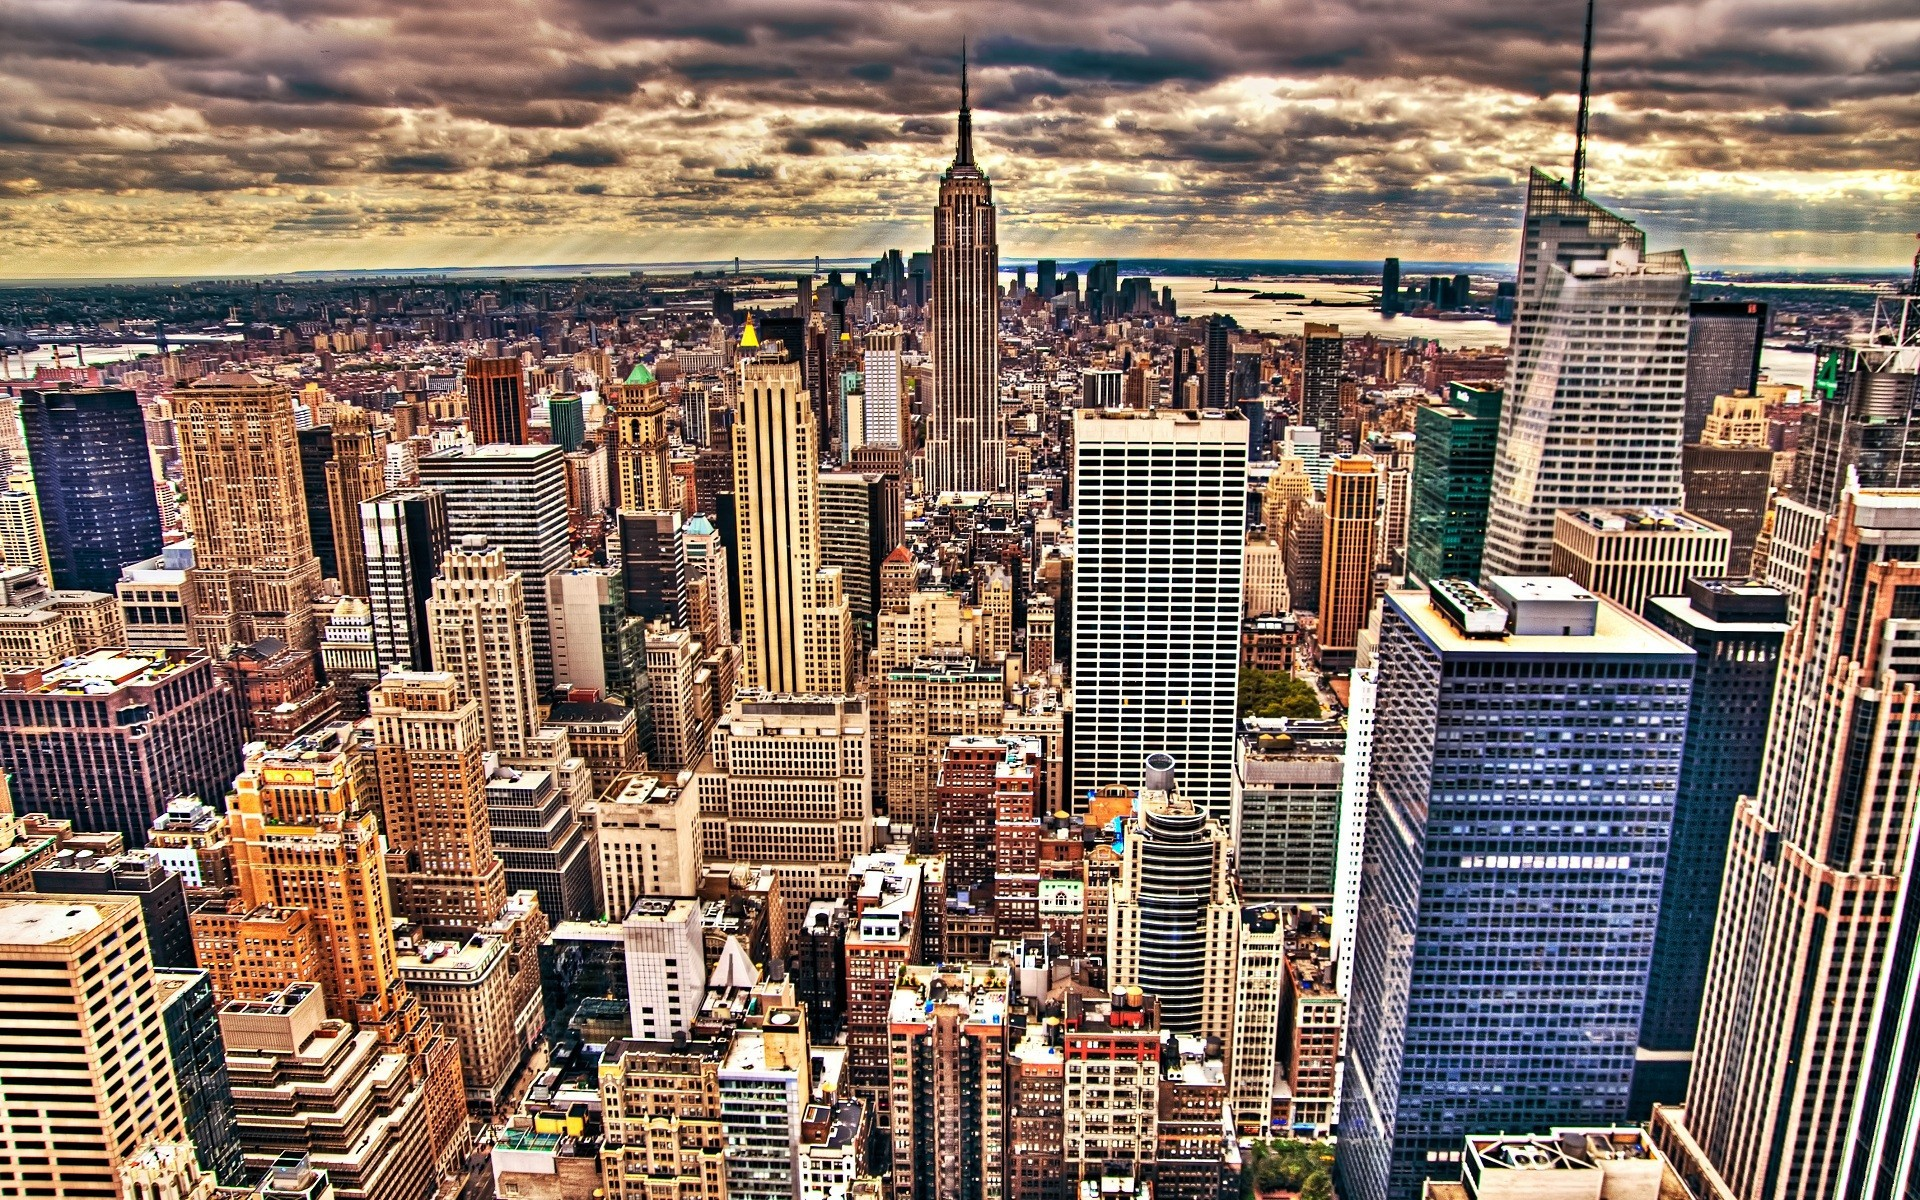 Cityscapes New York City Empire State Building city skyline wallpaper |  | 194261 | WallpaperUP